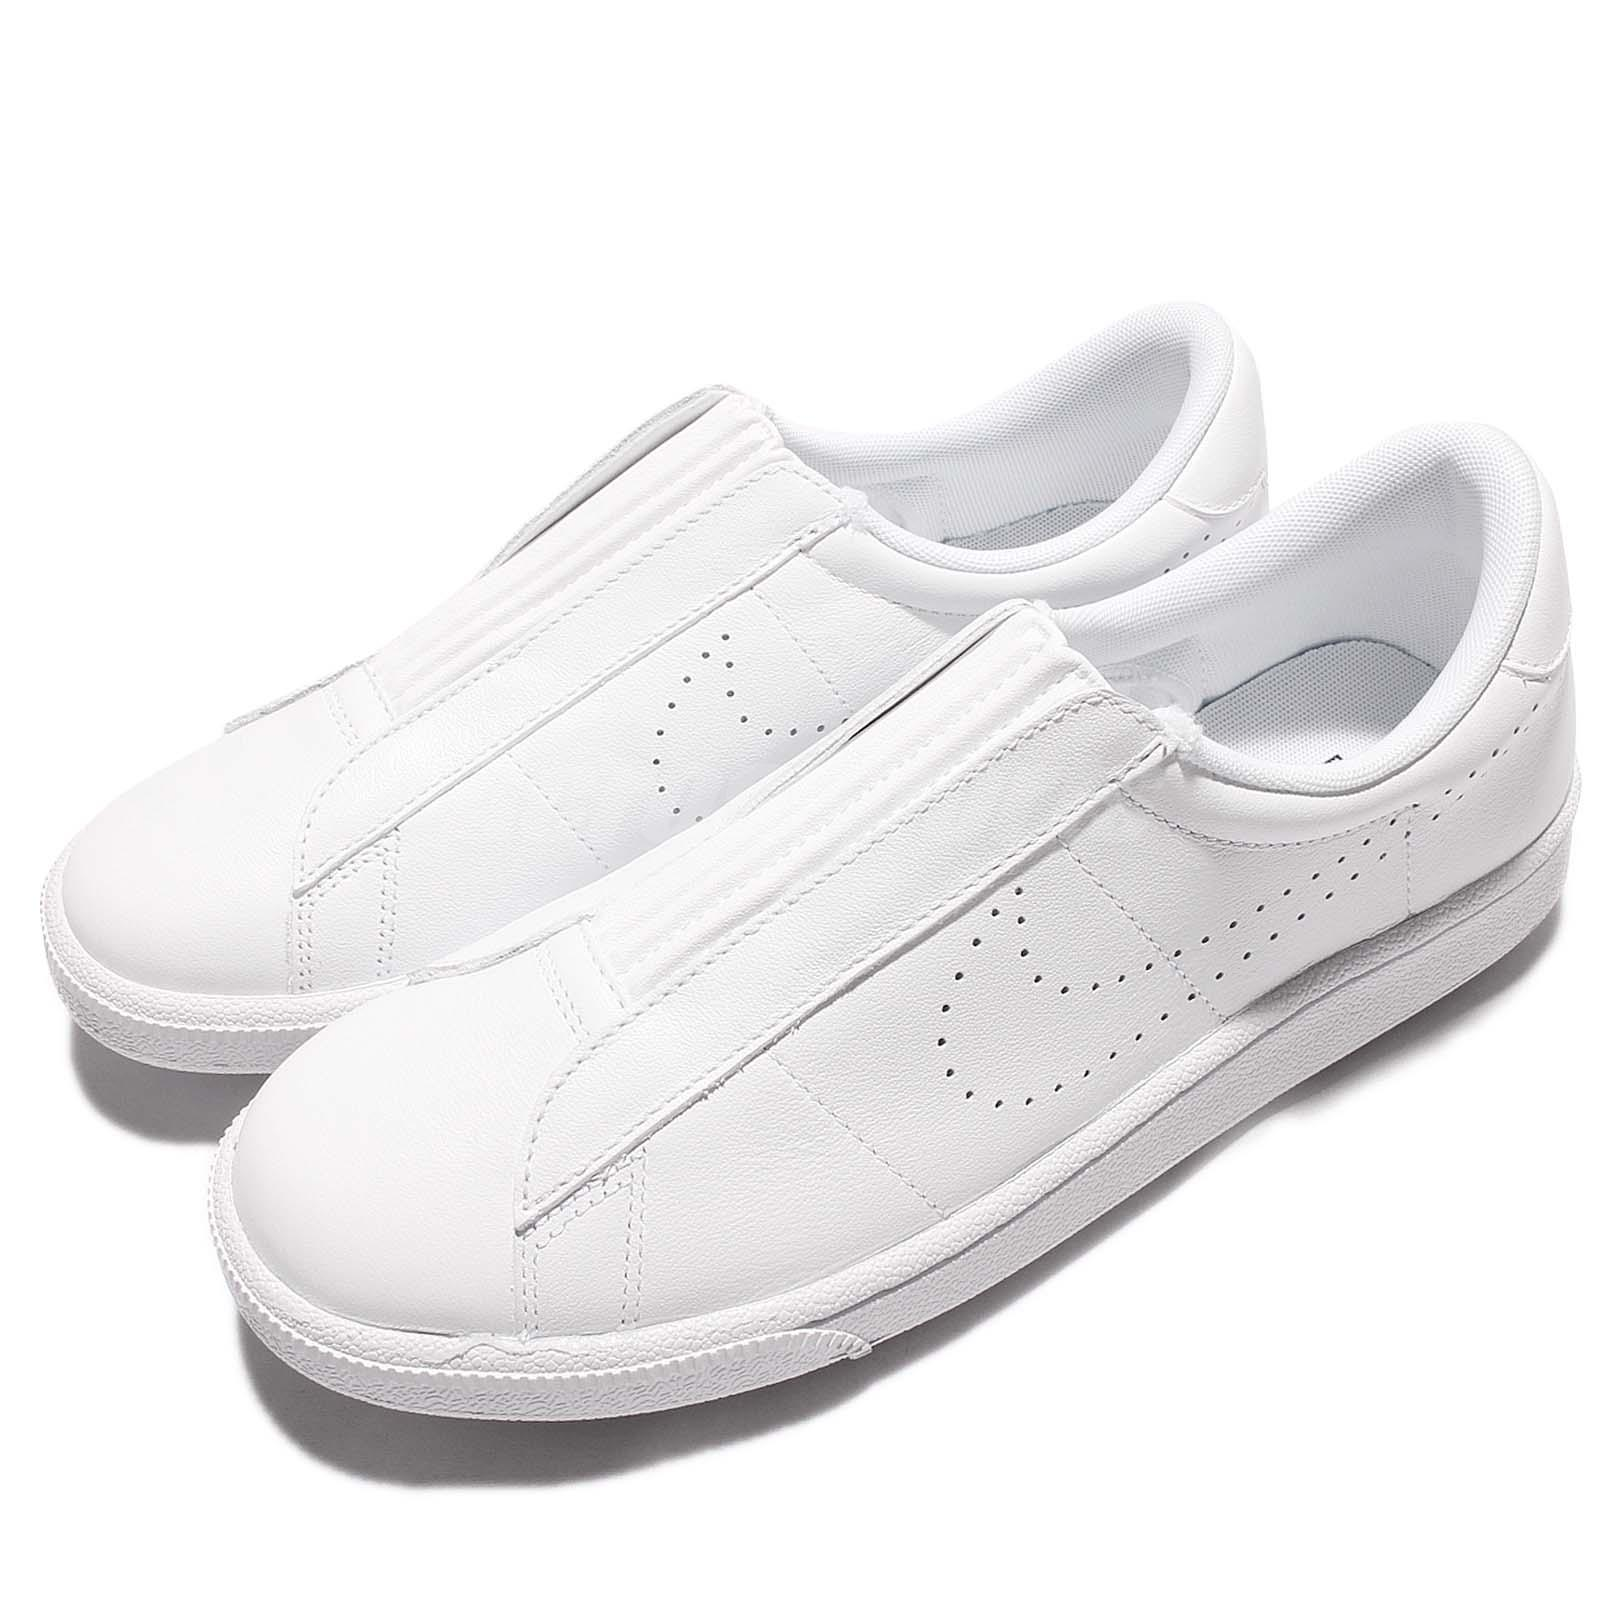 online store 27326 82404 Details about Wmns Nike Tennis Classic Ease White Women Shoes Sneakers  Slip-On 896504-100